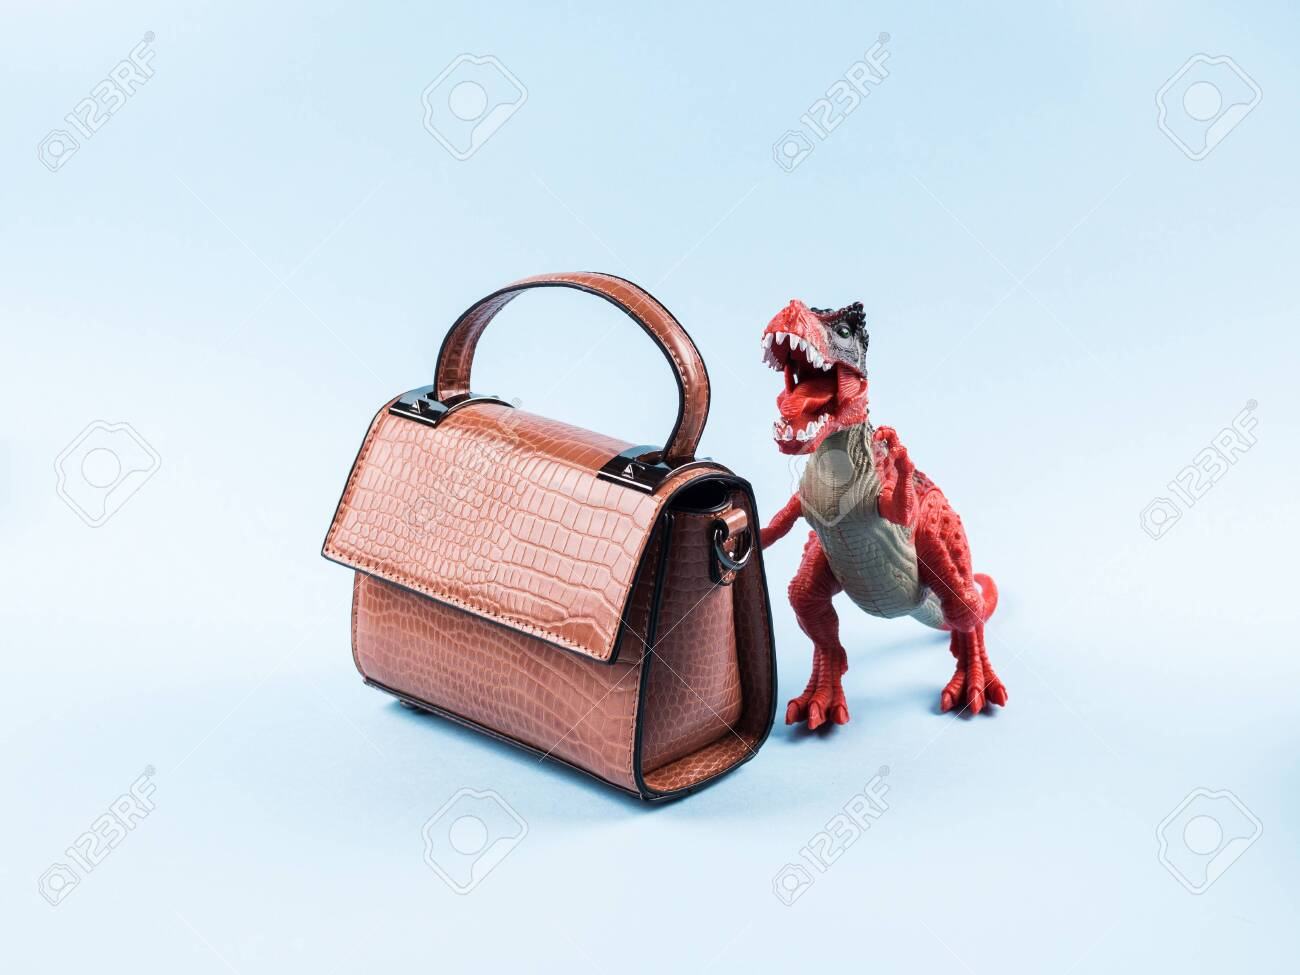 Angry dinosaur toy and lady hand bag. Fashion concept. Sale - 145339066